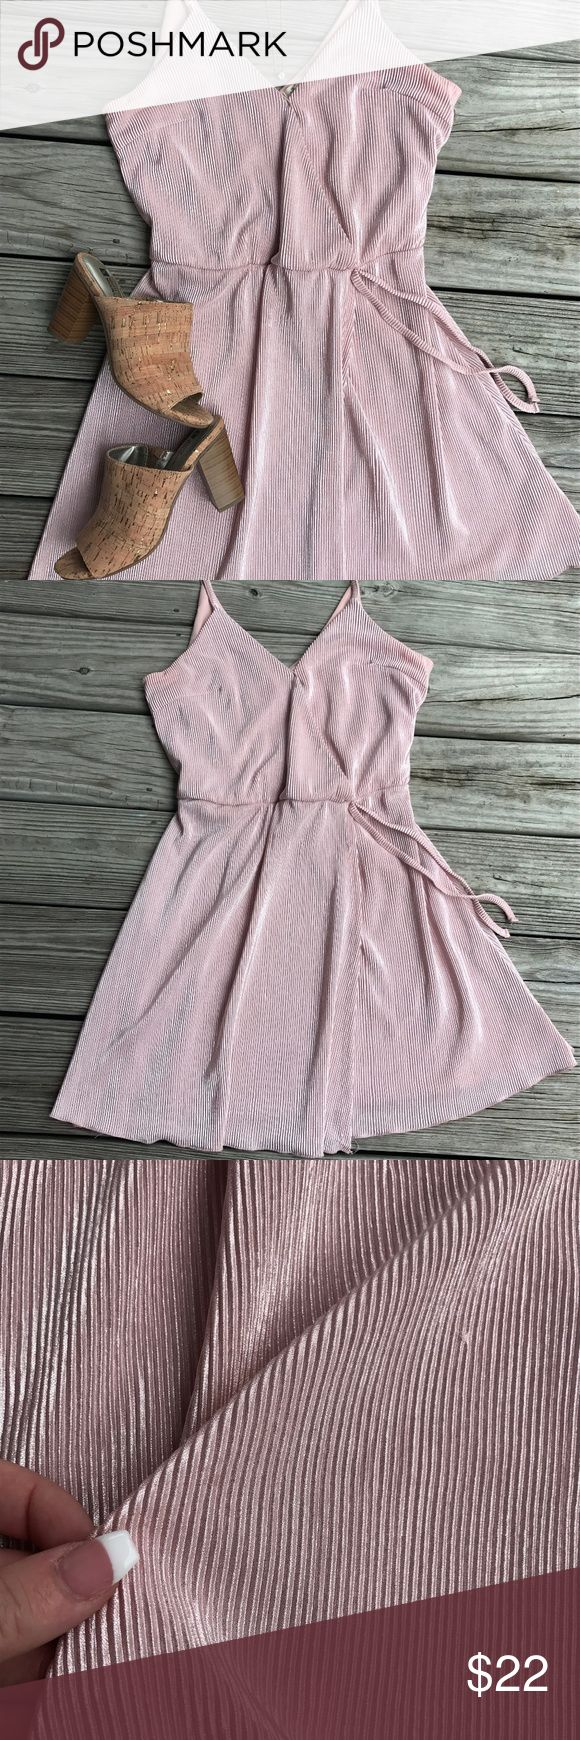 Pink Pearl A Line Sun Dress Fabric is breezy and soft. Amazing sheen and shine! This dress will make you sparkle. Condition is really good and I have worn it about 3 times. Really flattering waist line. Not lined from the waist down so make sure you wear neutral underwear or a slip! Tiny spot of discoloration on the back, not noticeable but will send pictures if requested. Ultra Flirt Dresses Mini